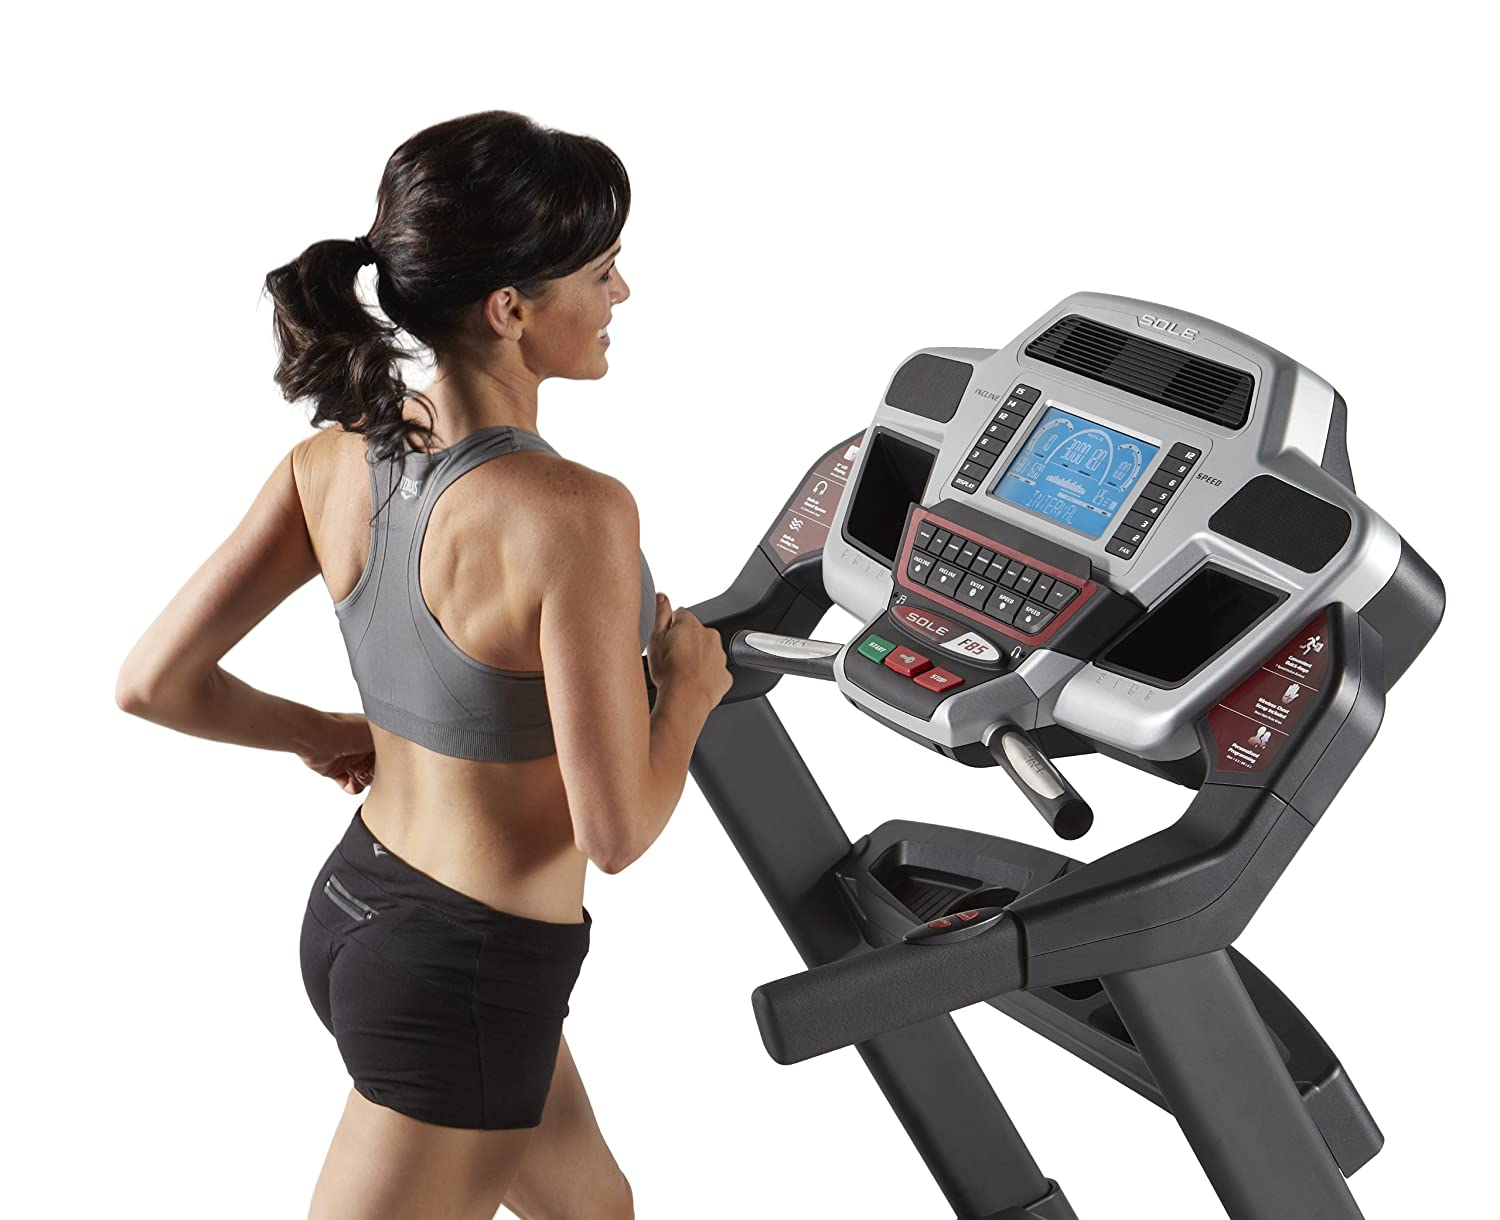 Best Proform Treadmill Reviews 2018: Top 5+ Recommended